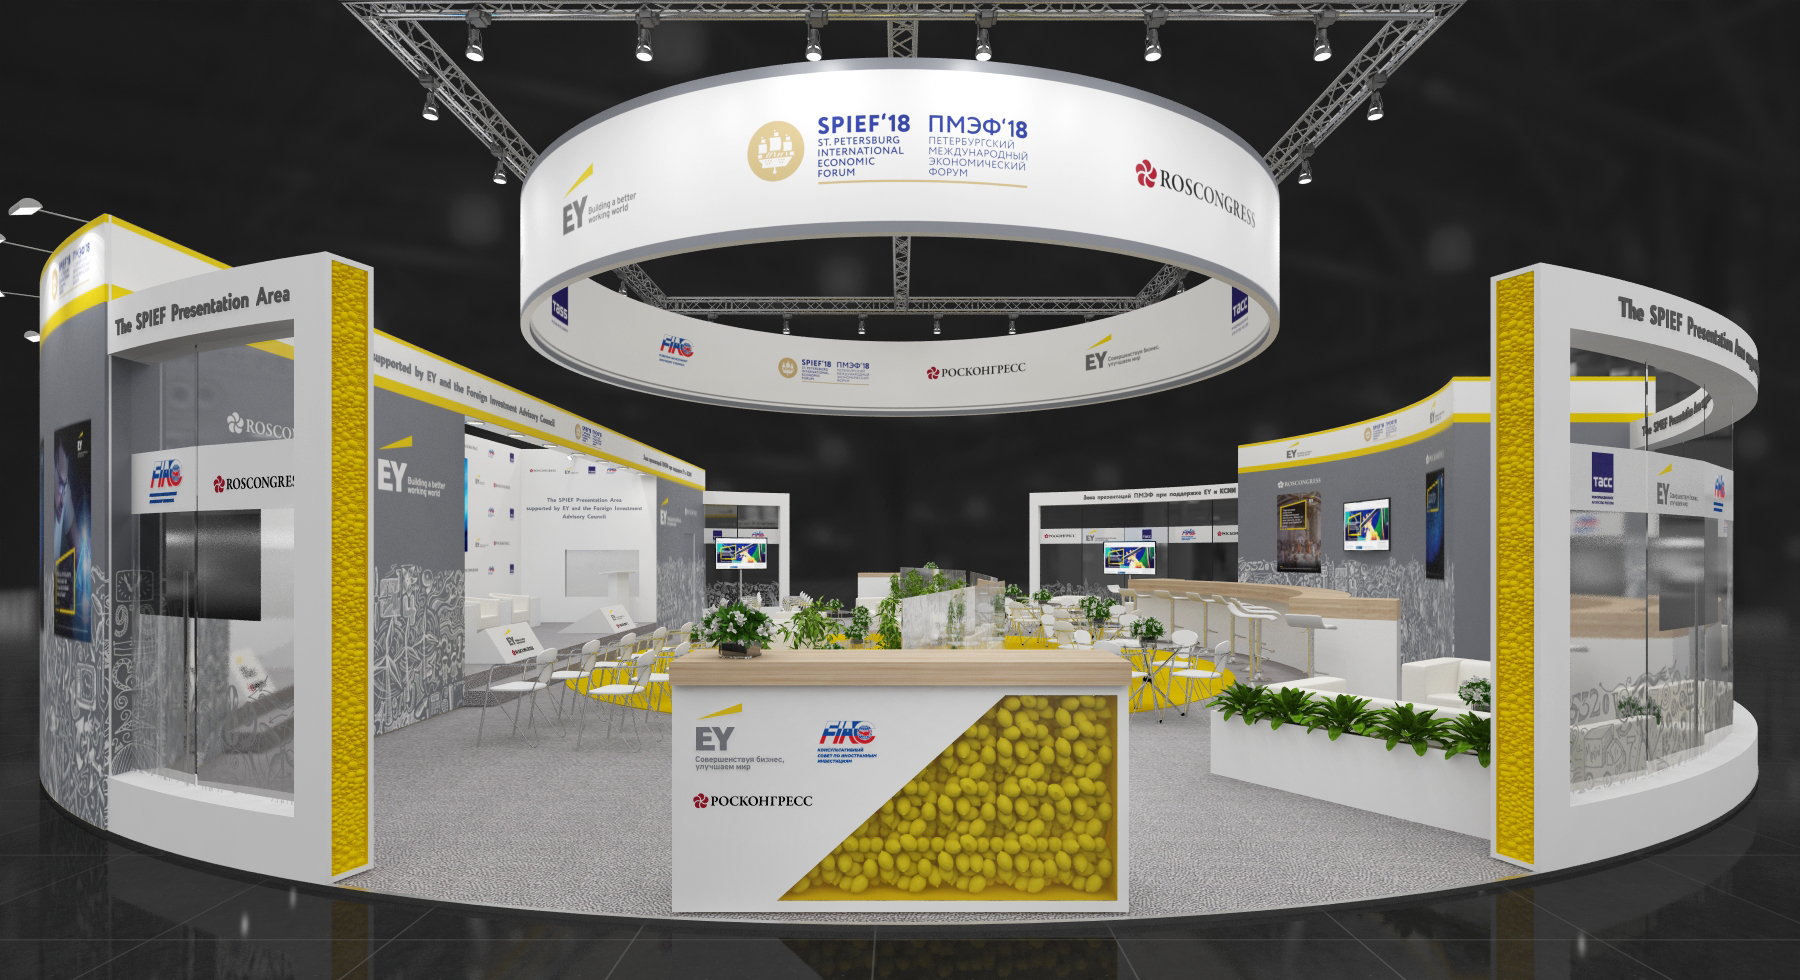 SPIEF Presentation Area supported EY and FIAC to Operate During the Forum